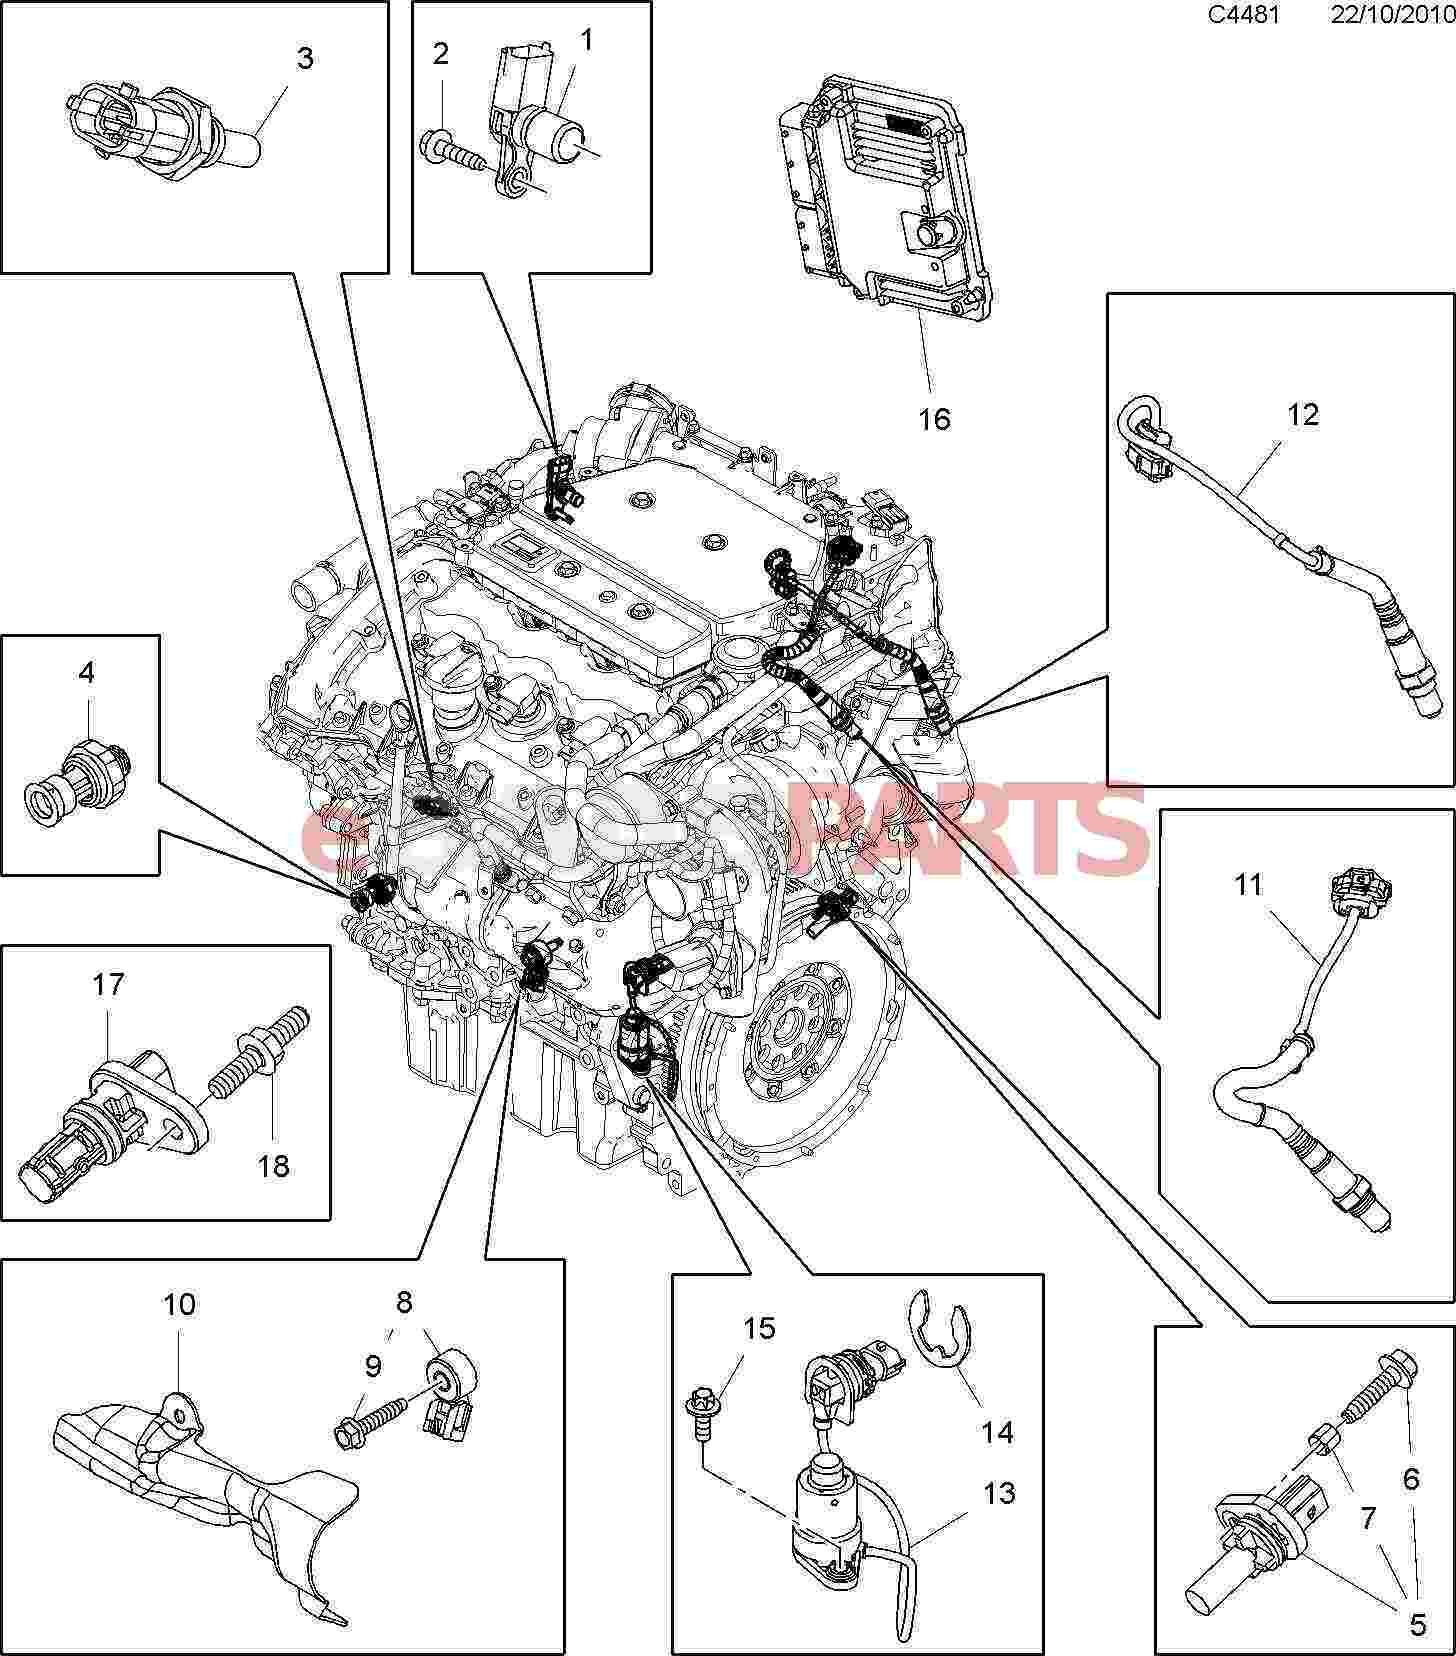 Simple Engine Breakdown Diagrams Great Installation Of Wiring Jeep Diagram 2001 9 5 Saab 3 0 Scematic Rh 90 Jessicadonath De 3406 Cat Parts 40l